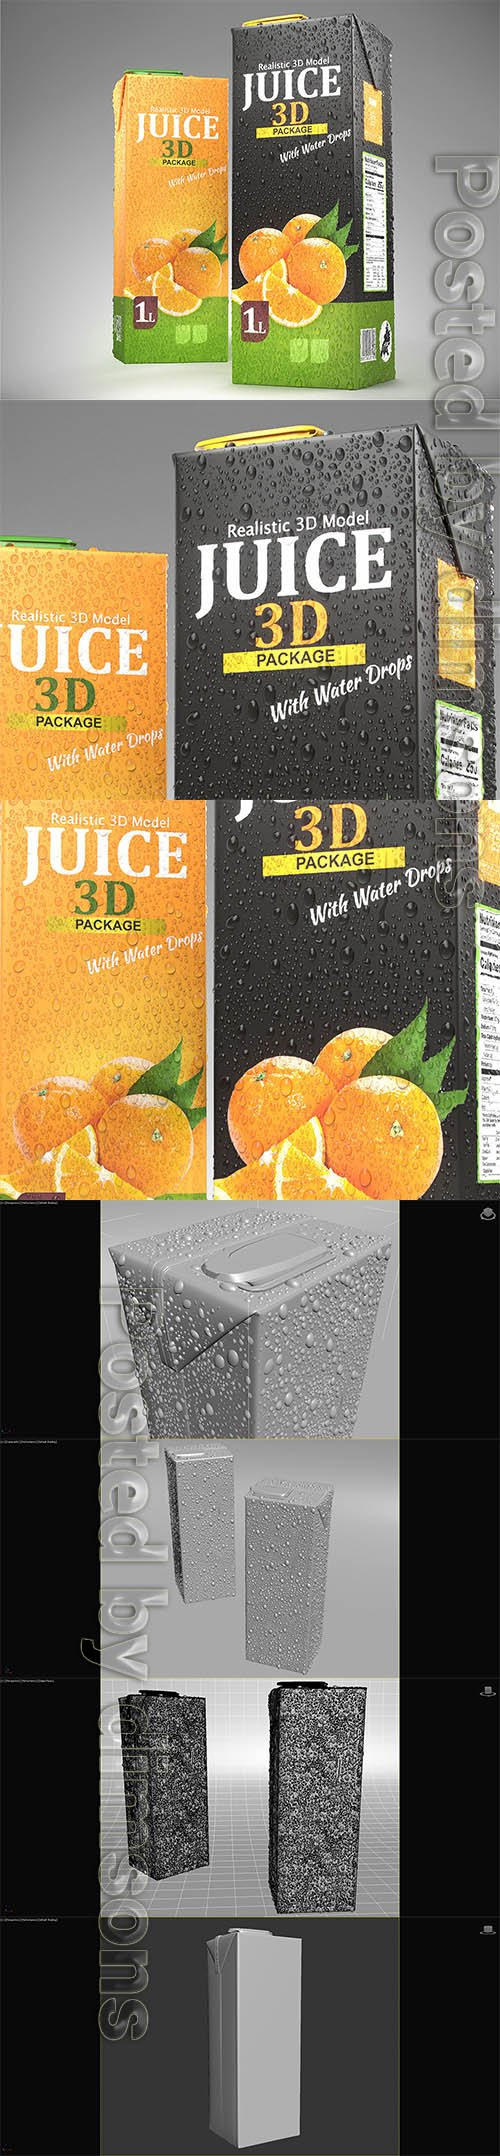 Juice Box 1L Size 3D model